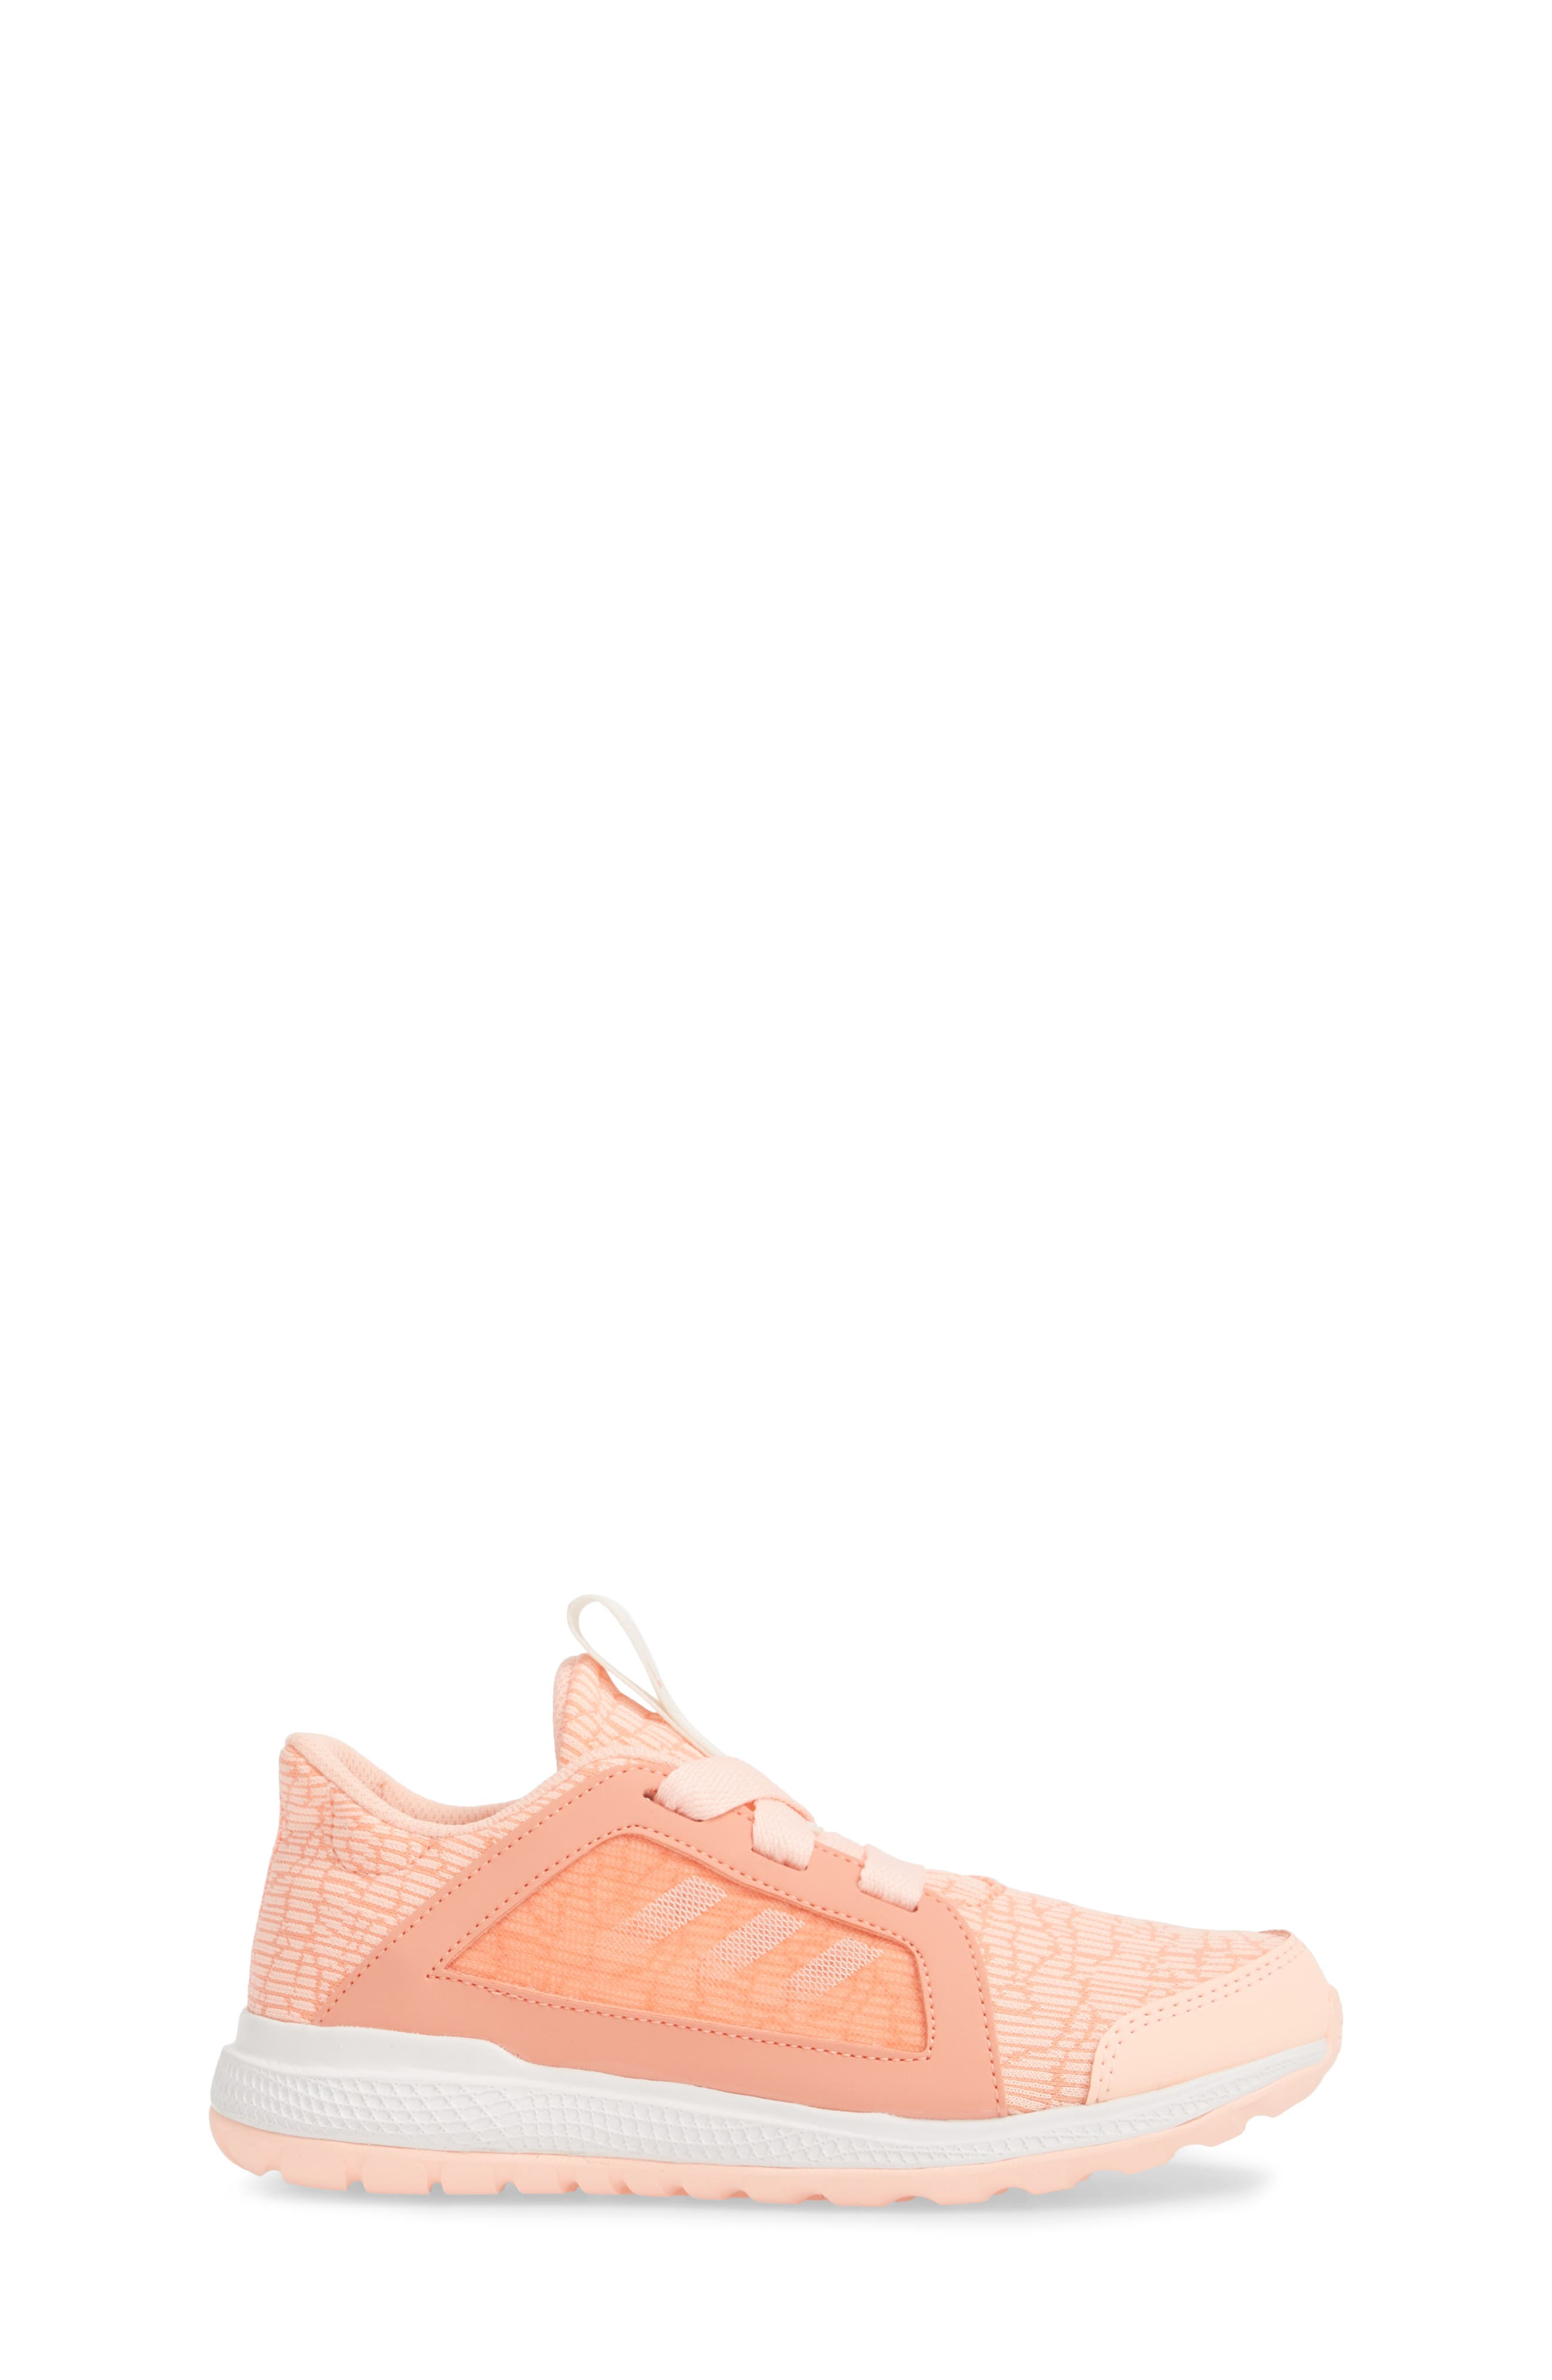 Edge Lux Running Shoe,                             Alternate thumbnail 3, color,                             Chalk Coral/ White/ Orange